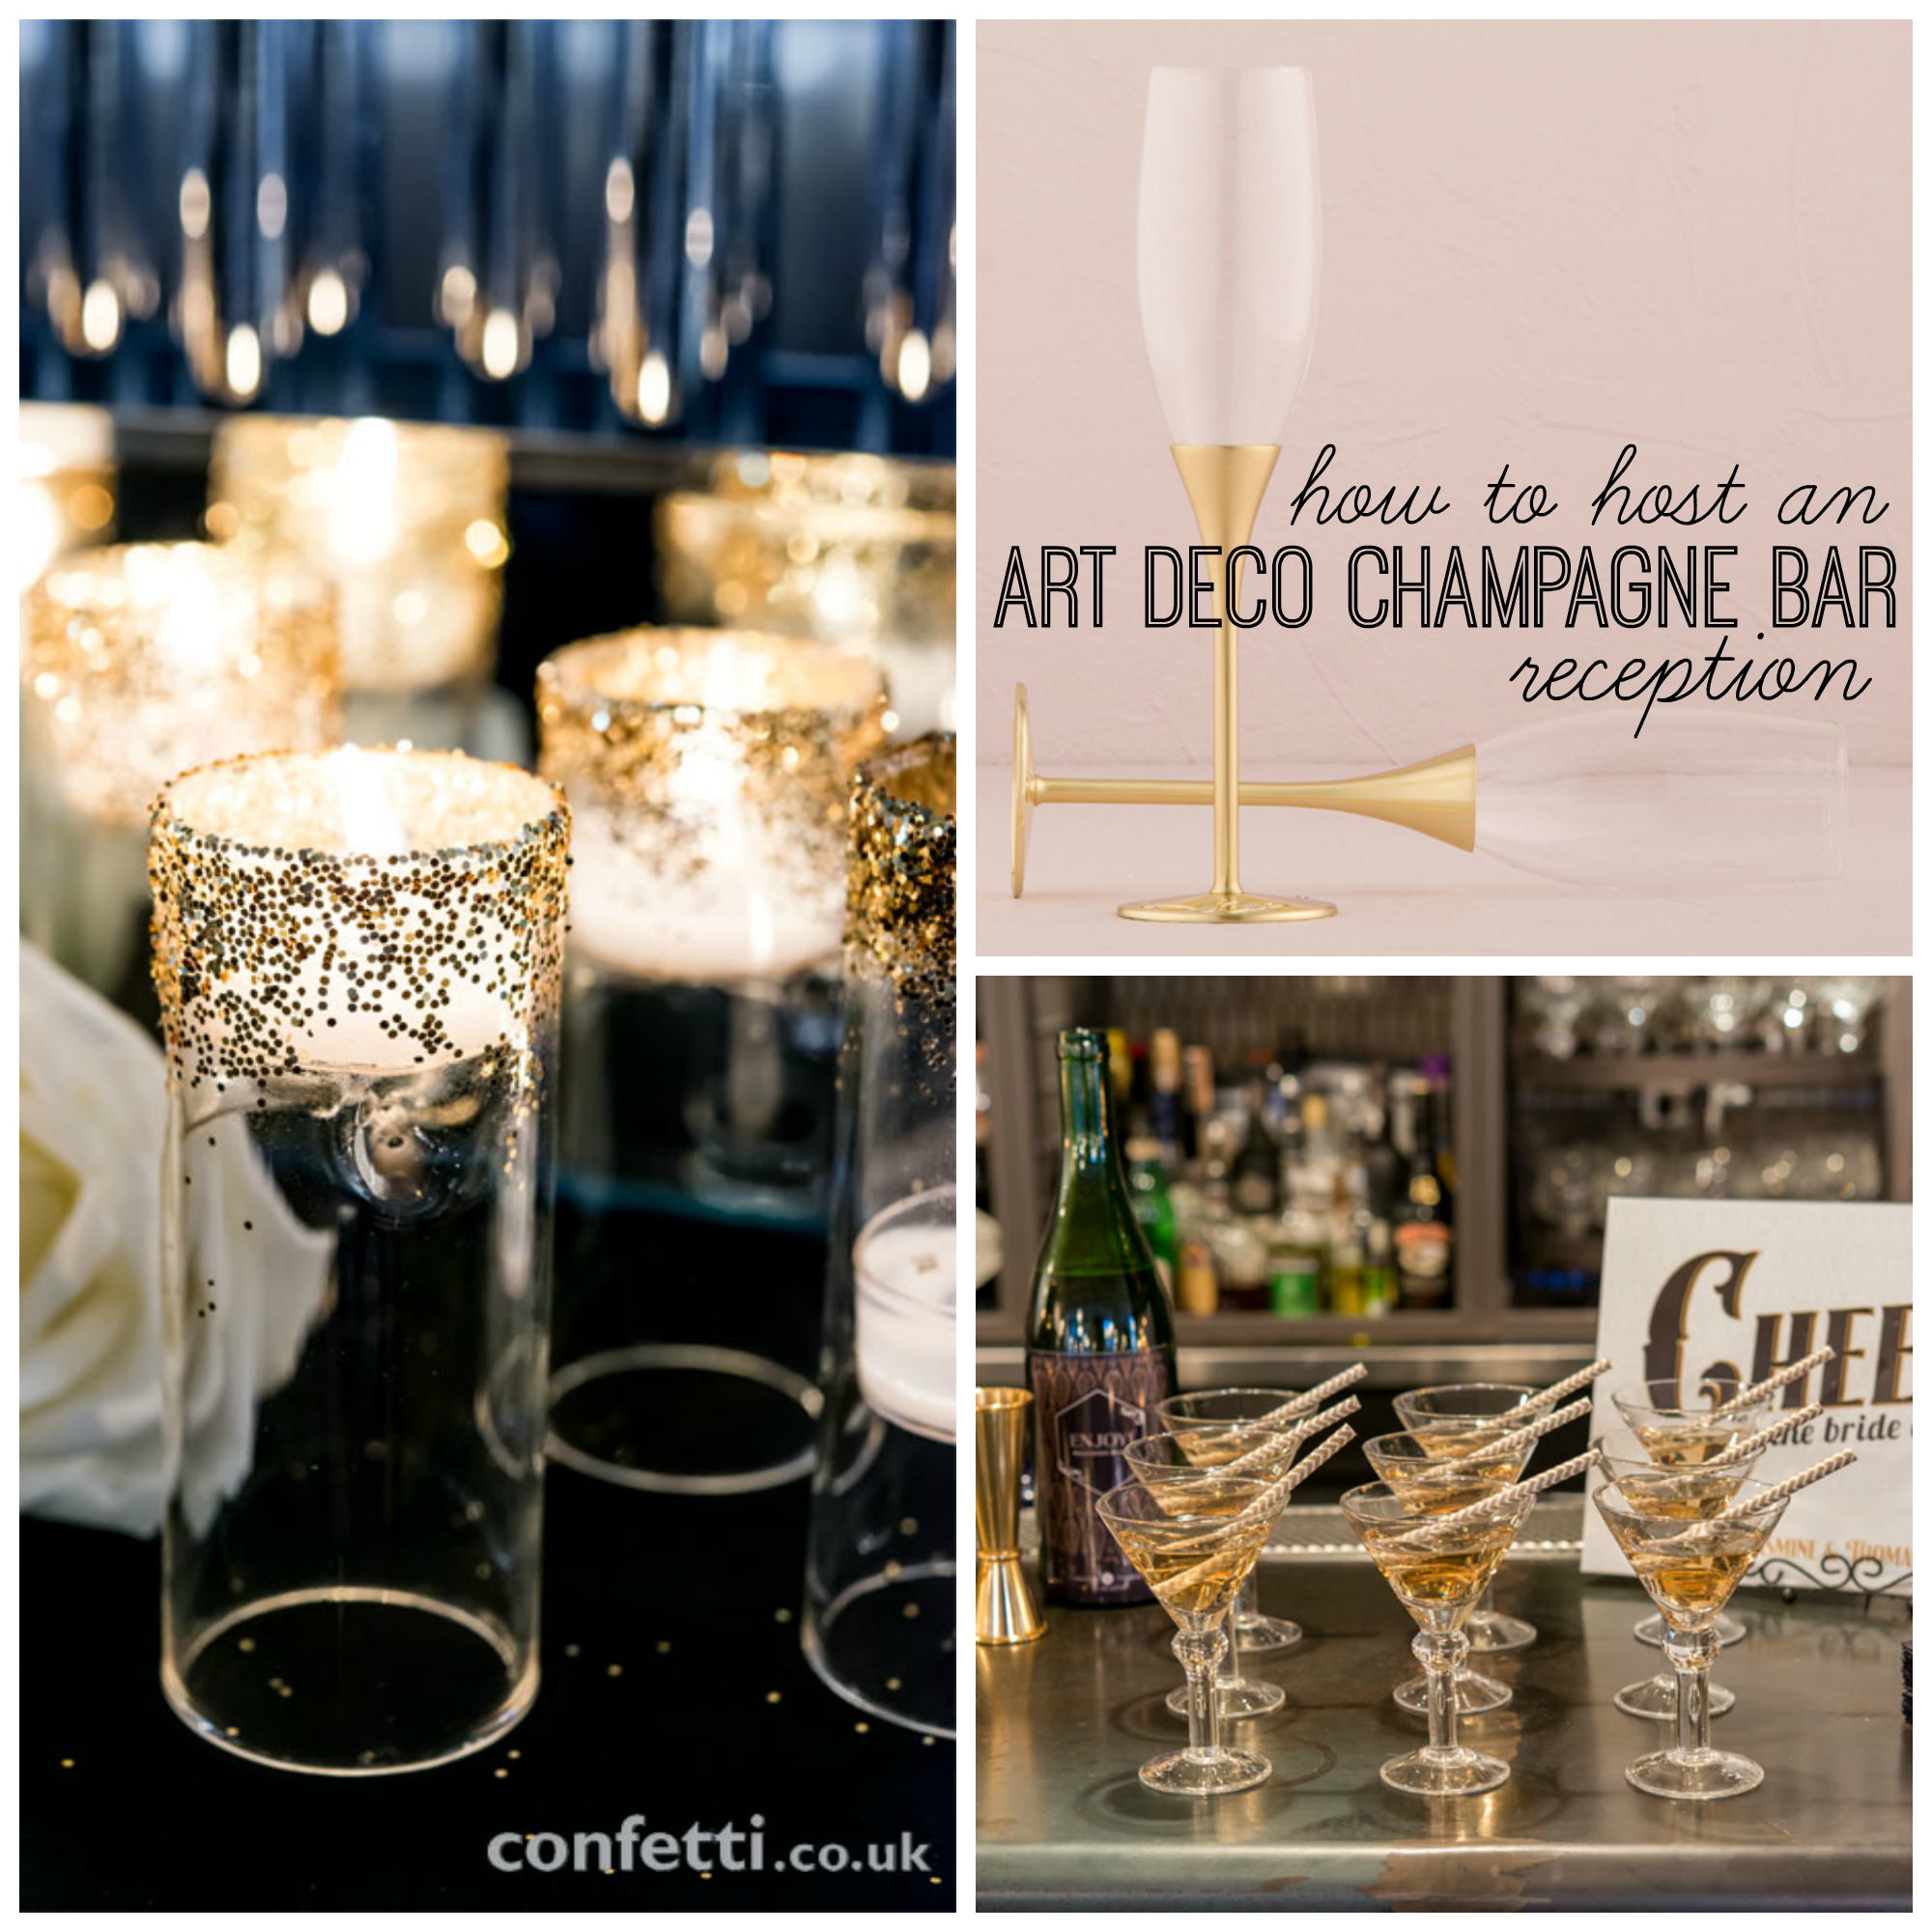 Art Deco Once Characterised By Striking Black And Gold Is A Hot Wedding Trend Here S How To Host An Champagne Bar Reception